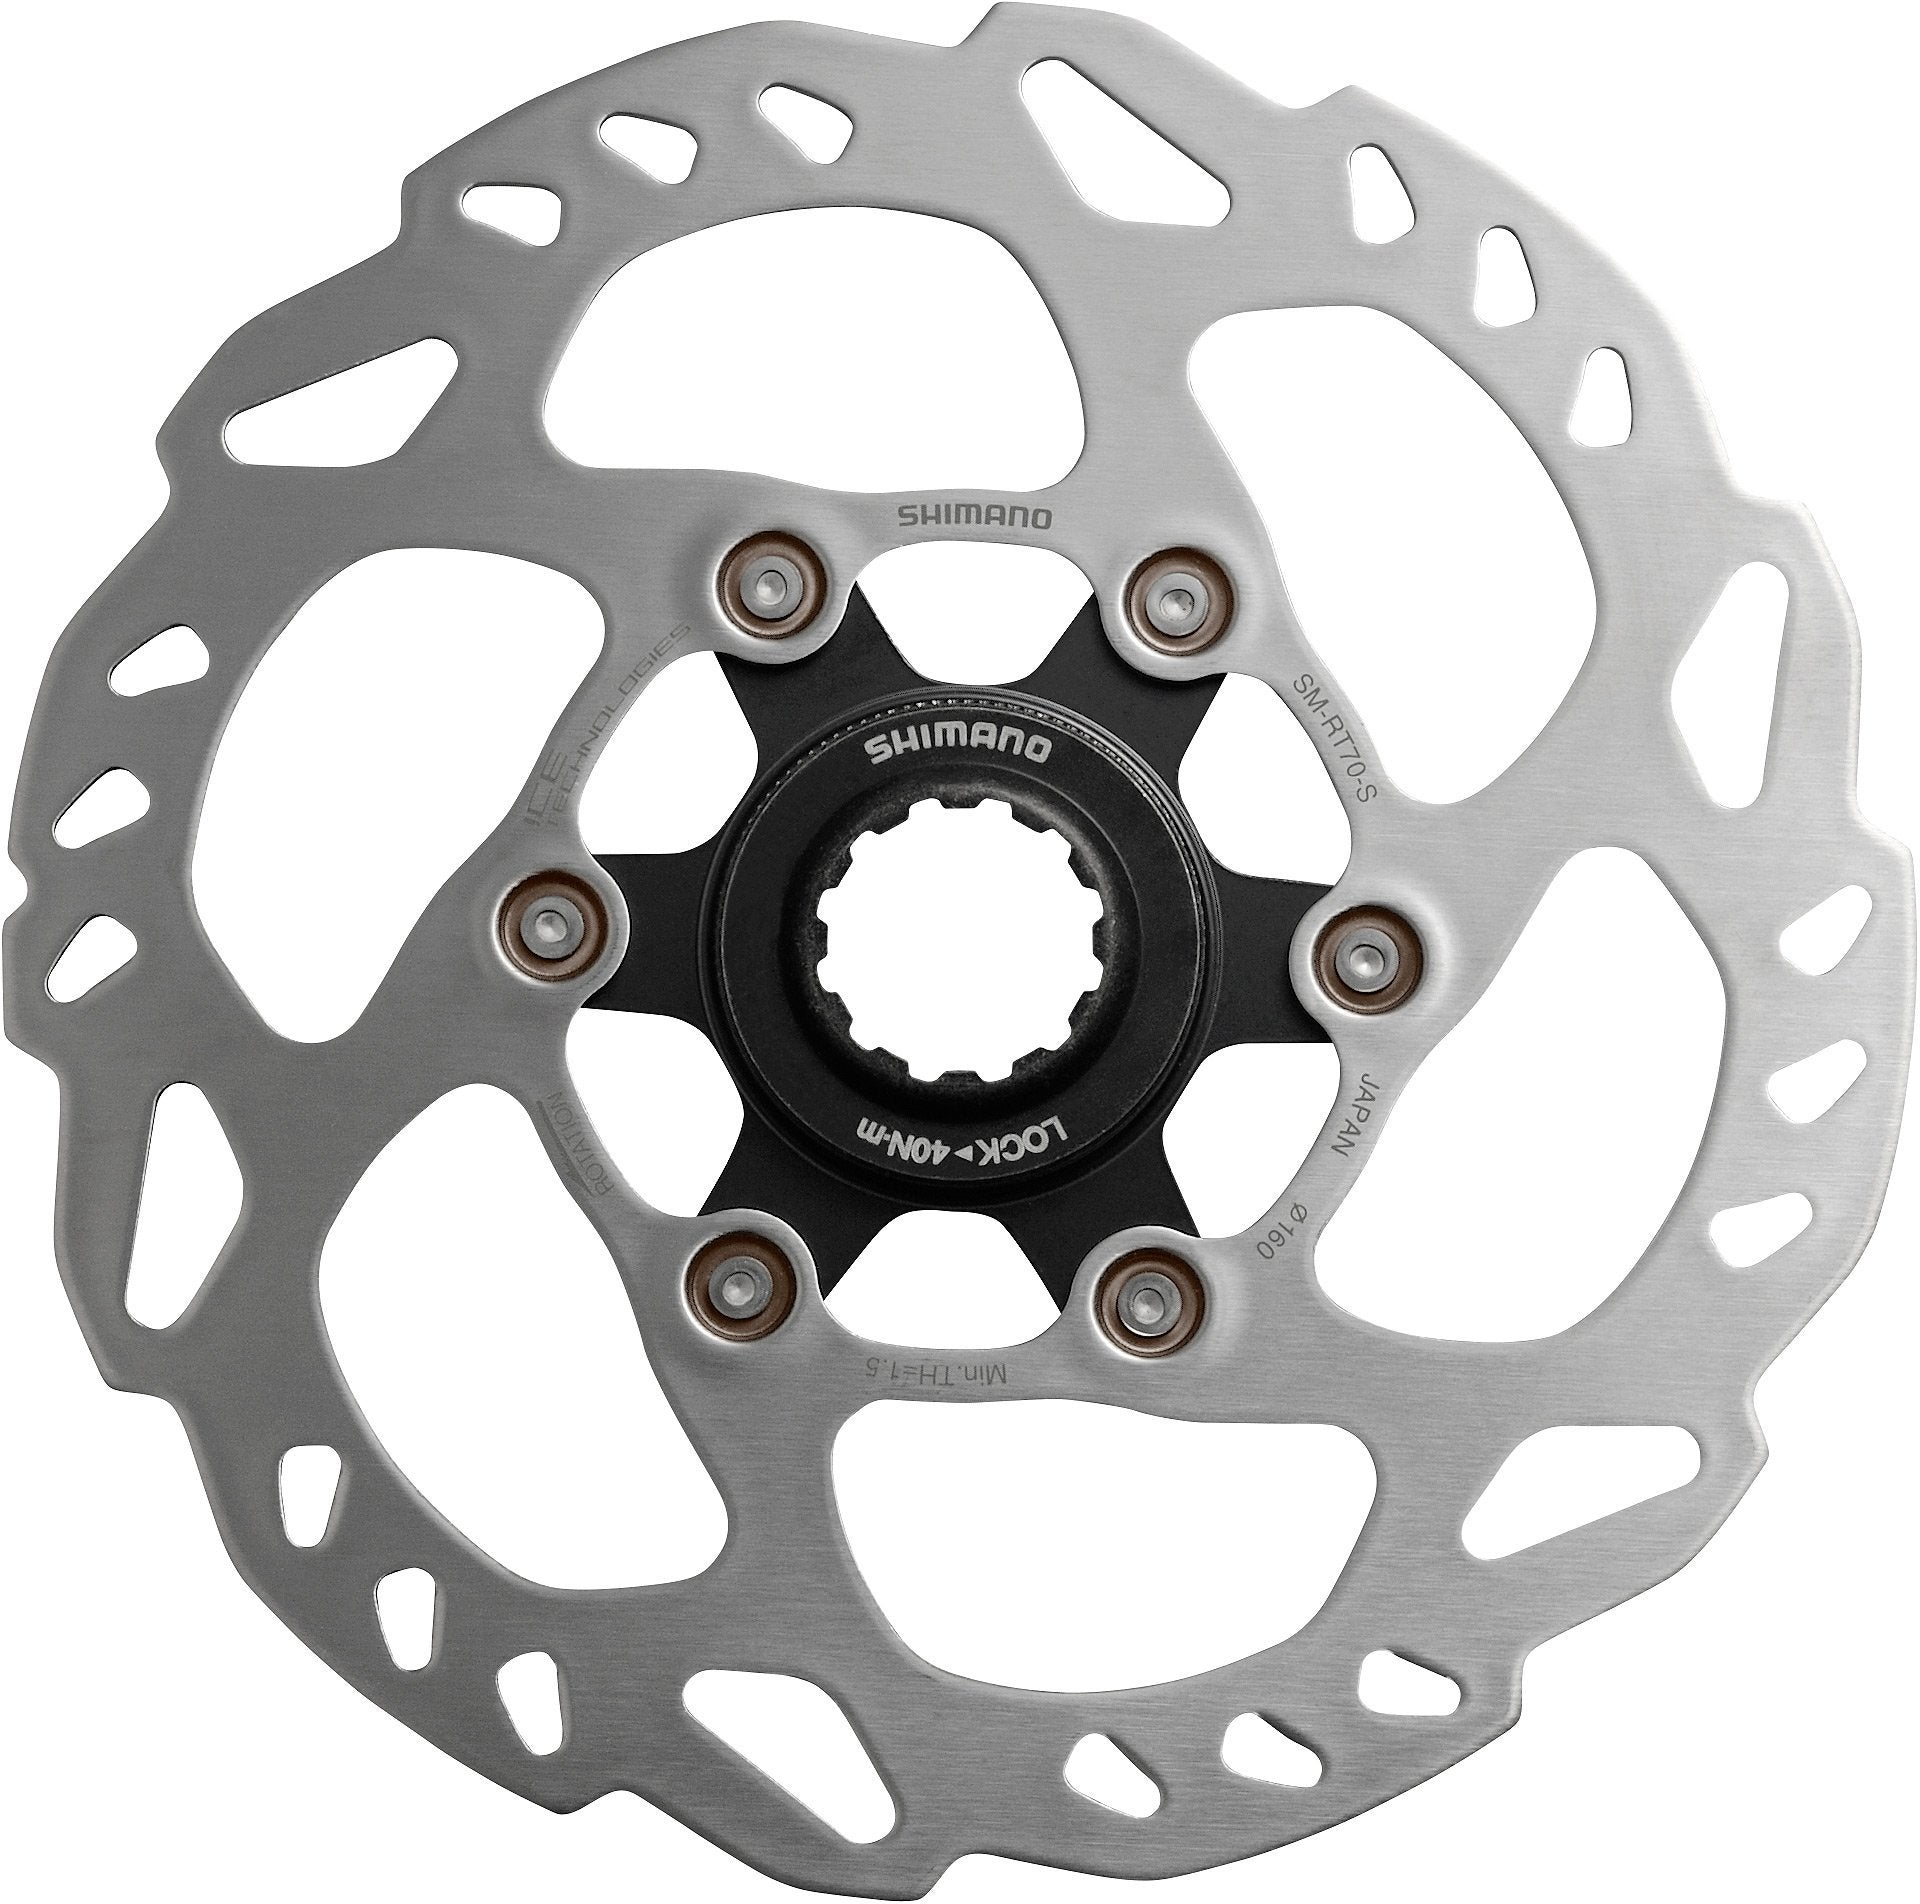 Shimano Components > Brakes & Chainsets Shimano SM-RT70 Ice Tech Centre-Lock disc rotor